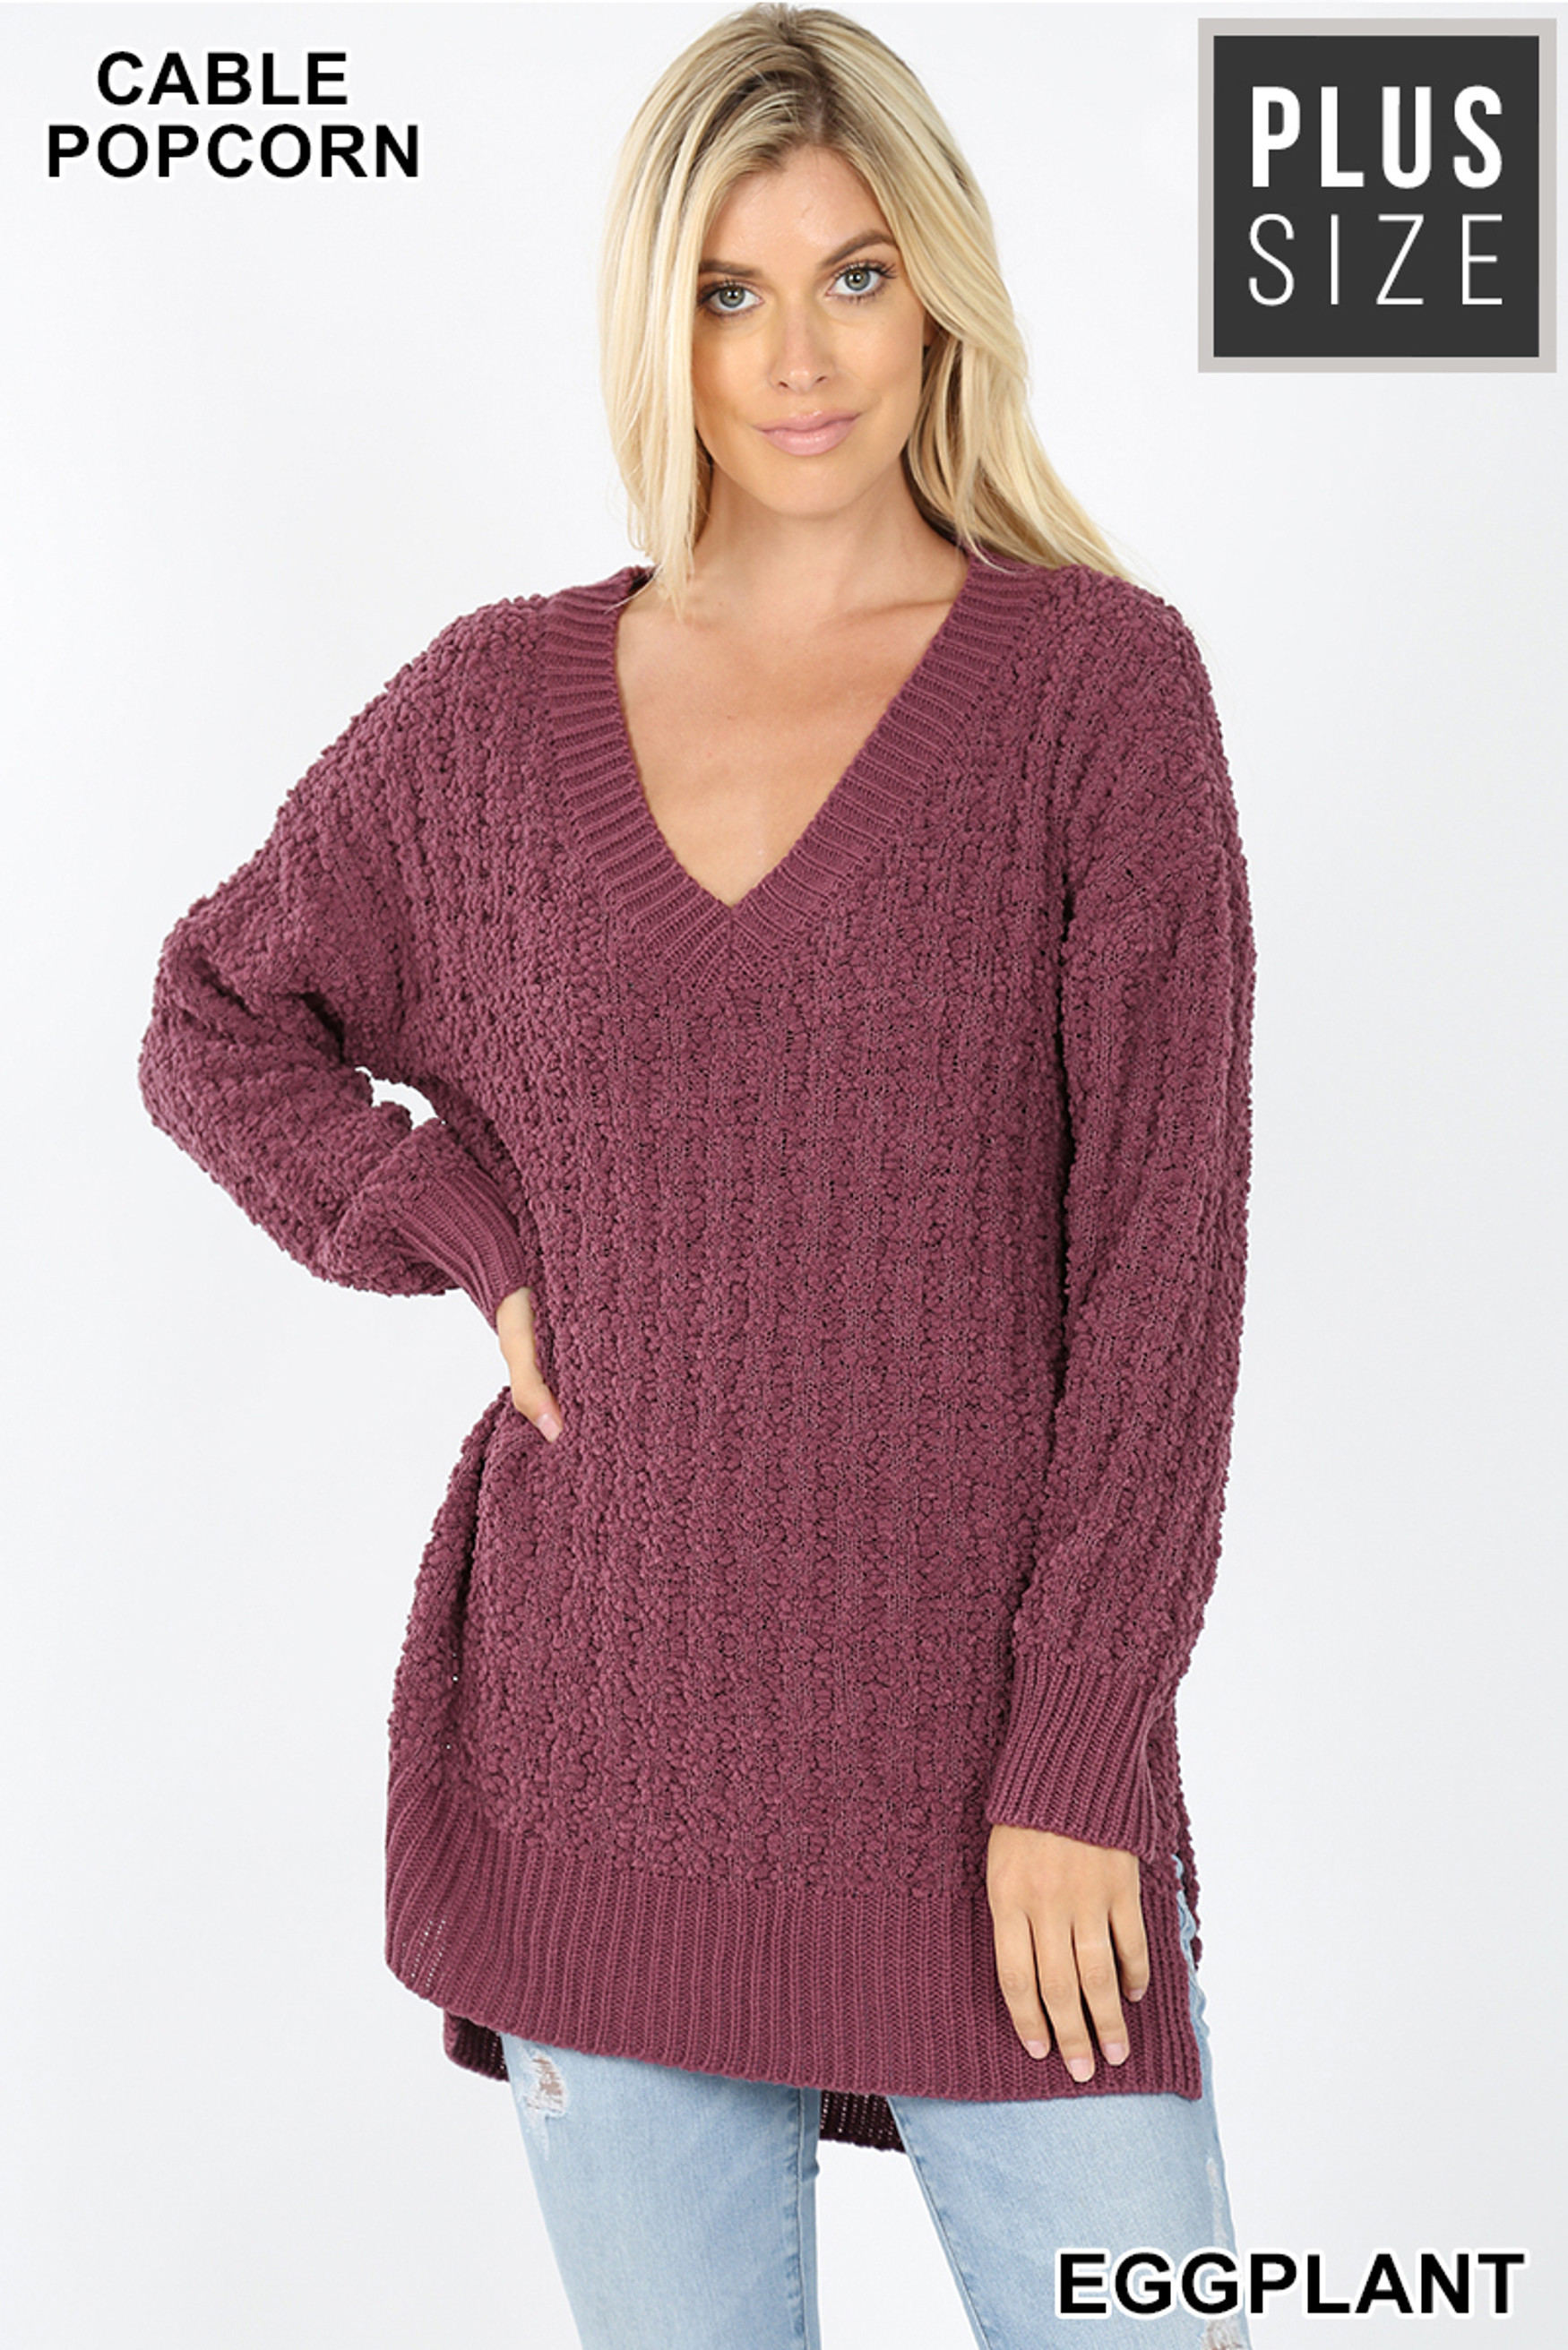 Front image of Eggplant Cable Knit Popcorn V-Neck Hi-Low Plus Size Sweater